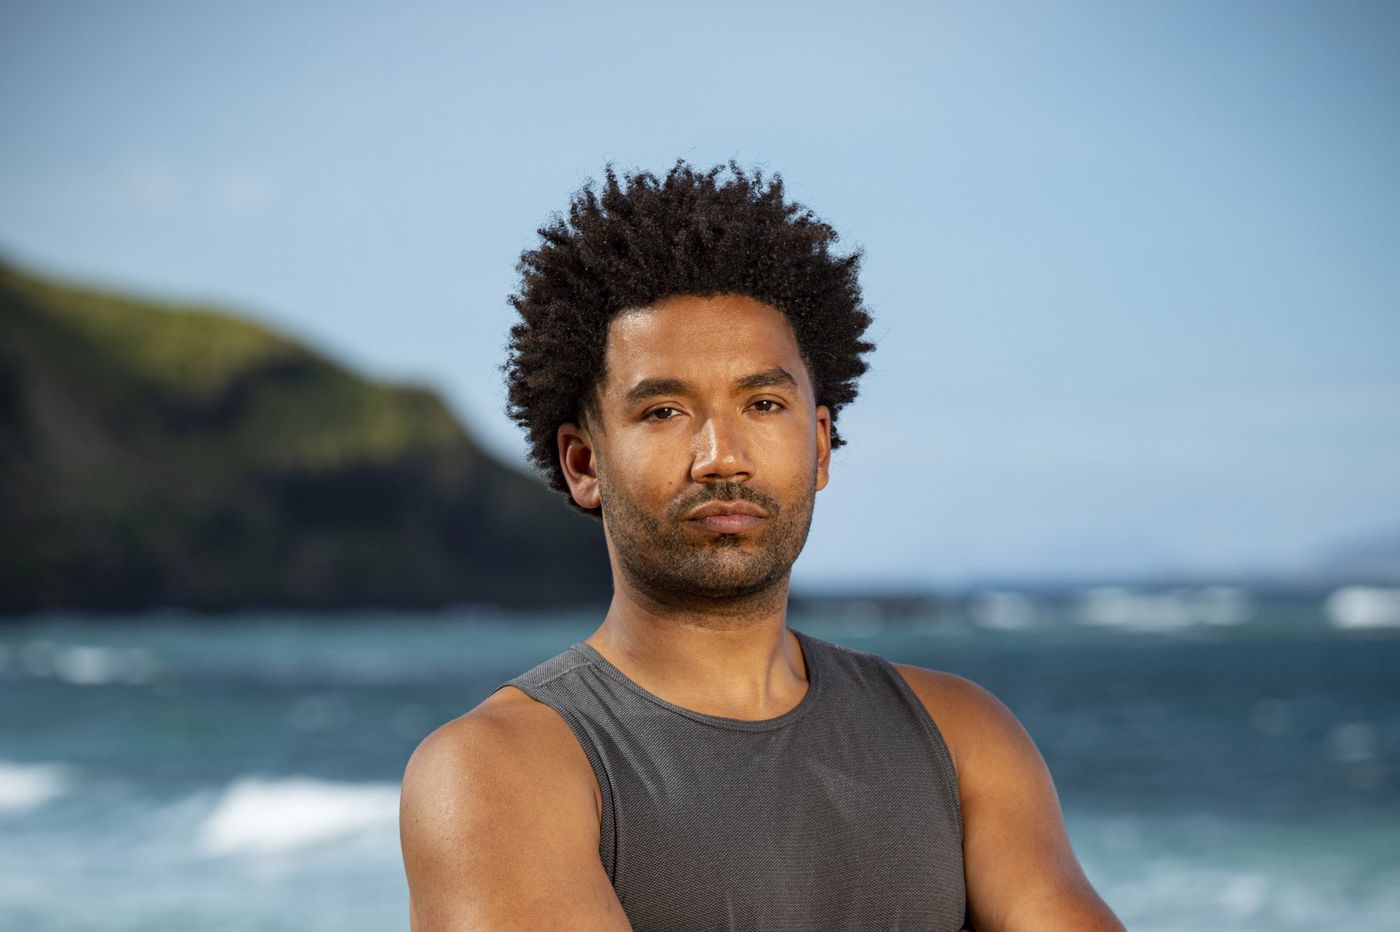 Ardmore native and 'Survivor' champion is returning to compete against 19 other winners